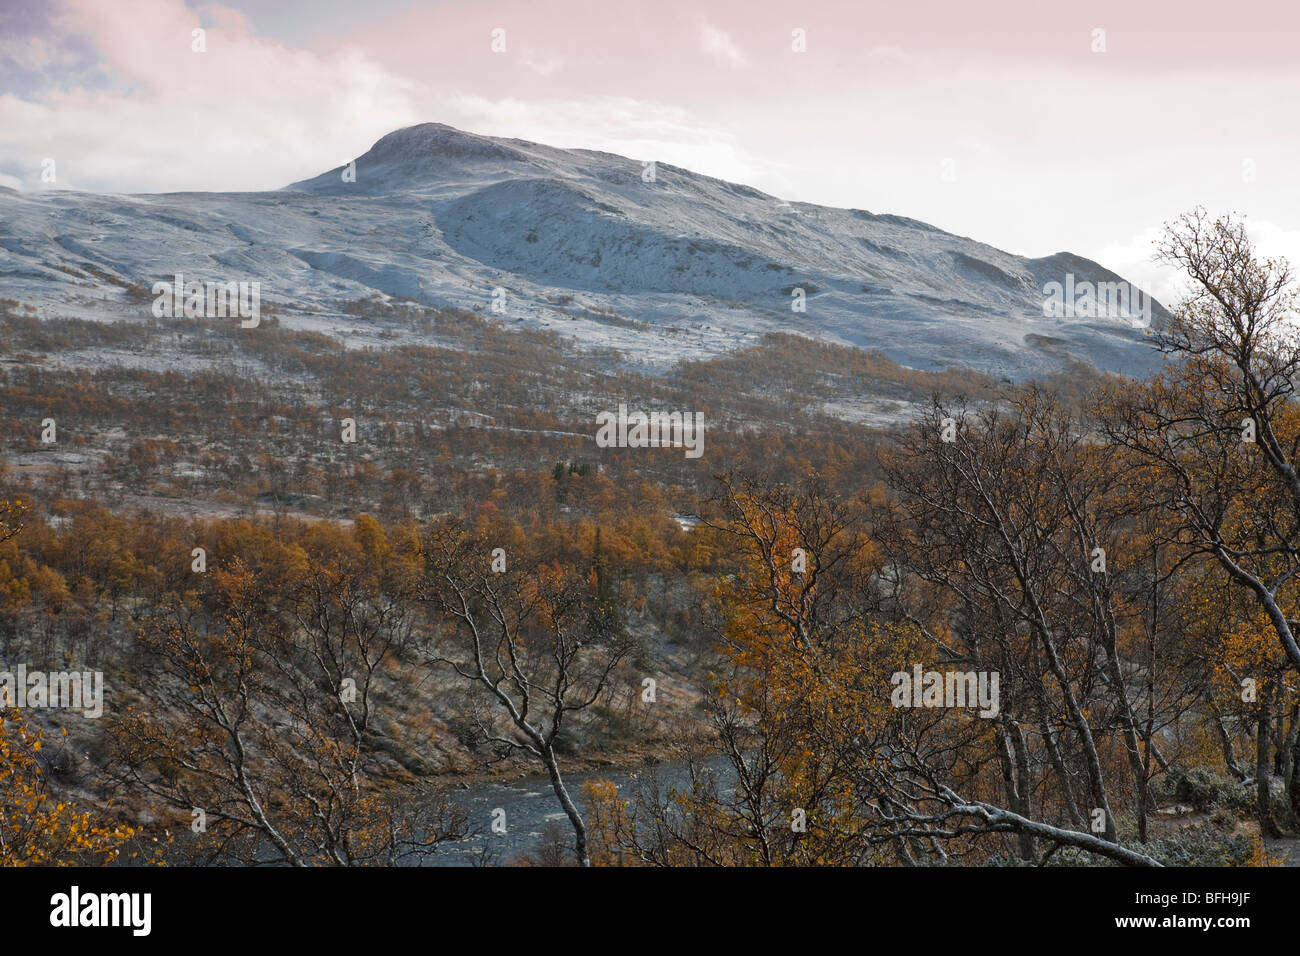 Sweden Jämtland Storulvån fjell seasons autumn fall winter snow first snow birch forest winter snowfall - Stock Image